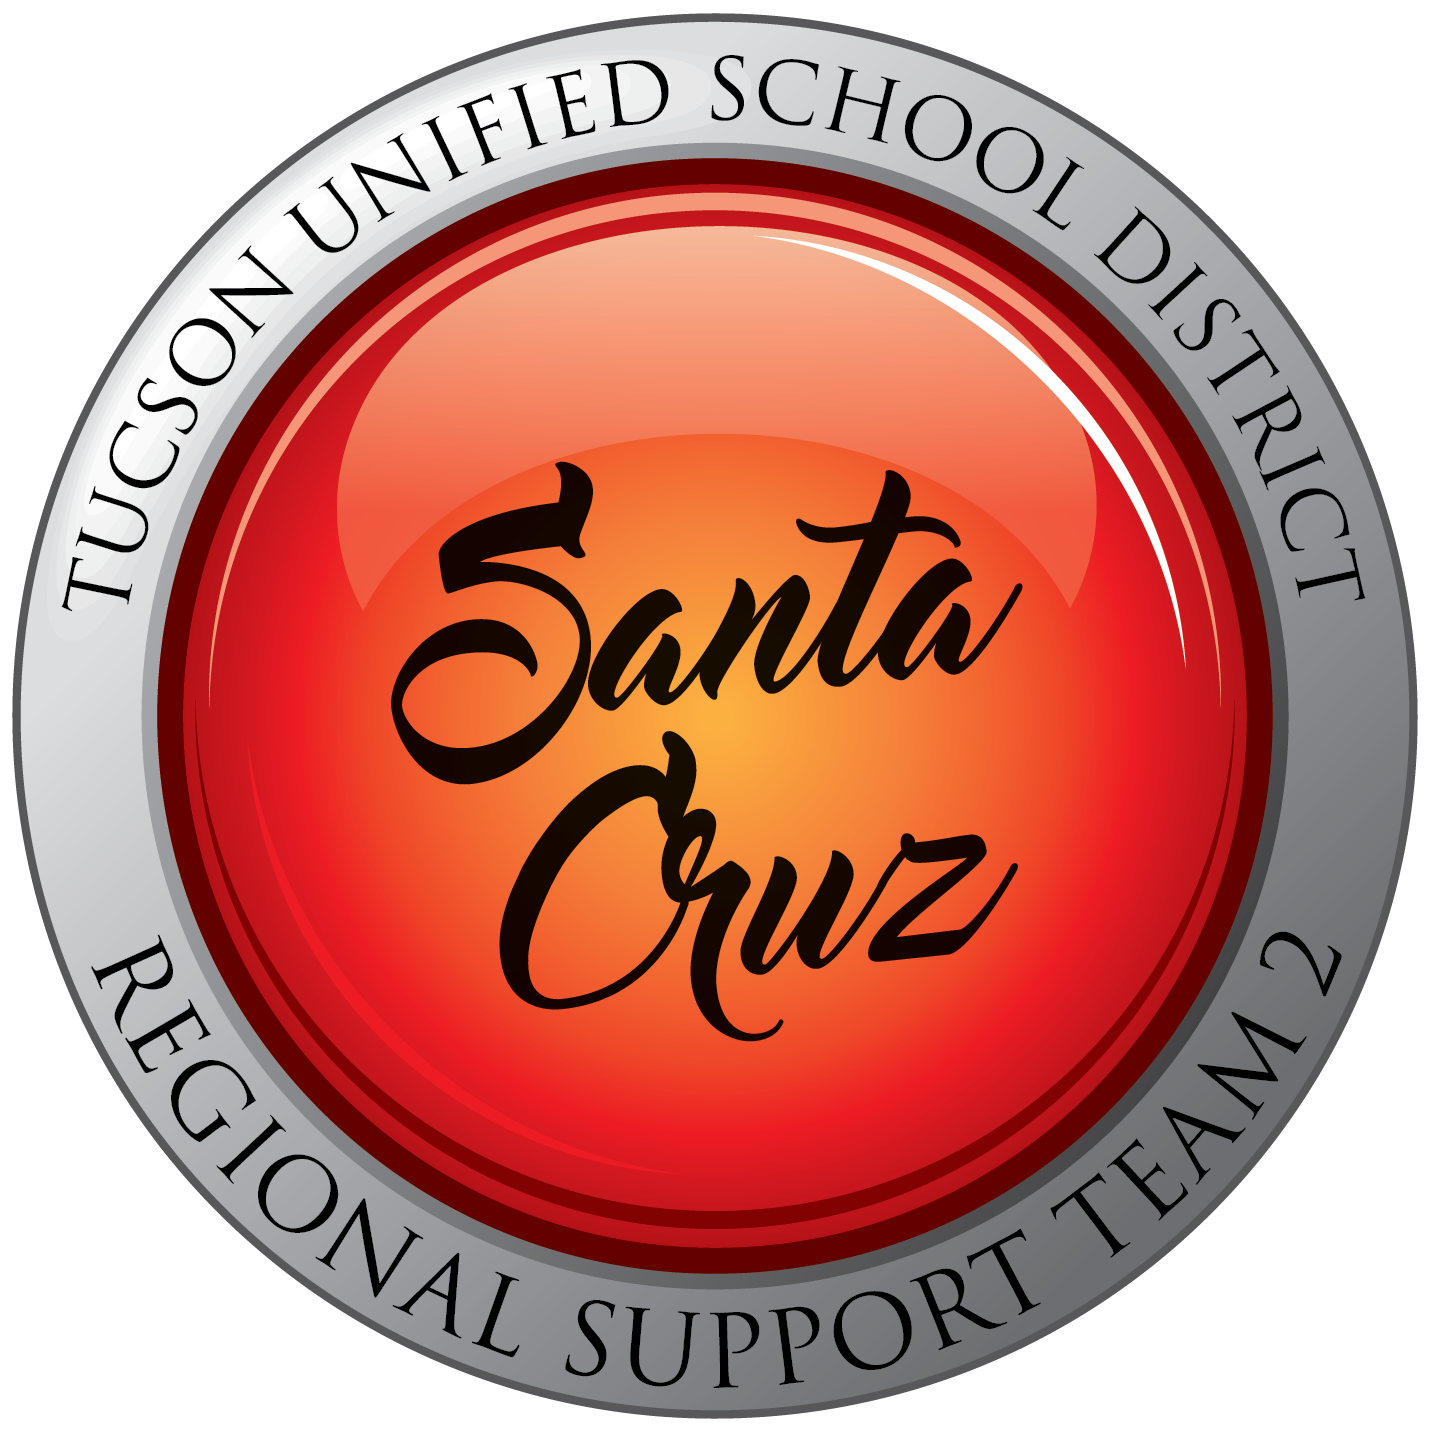 Santa Cruz Region Seal